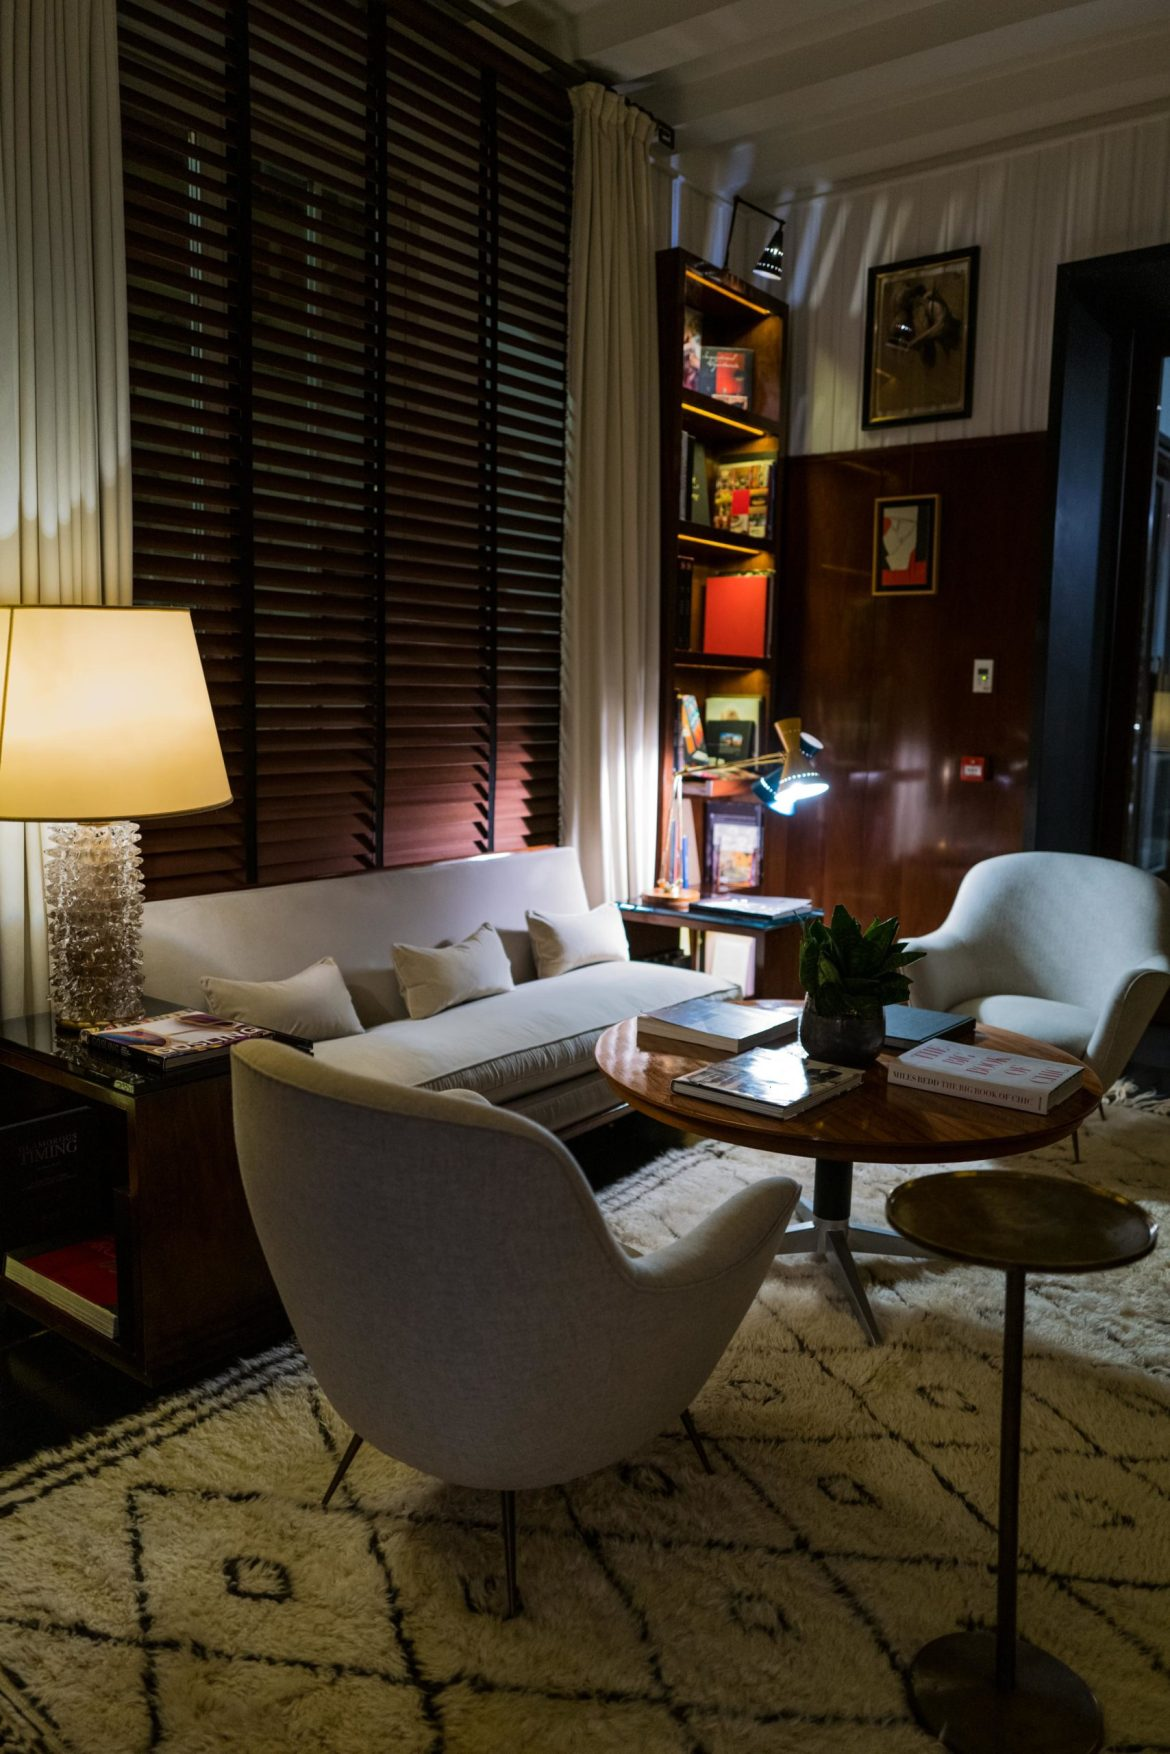 Have aperitivo in this library -like setting at JK Place Roma hotel in Rome, The Taste Edit #hotel #rome #travel #decor